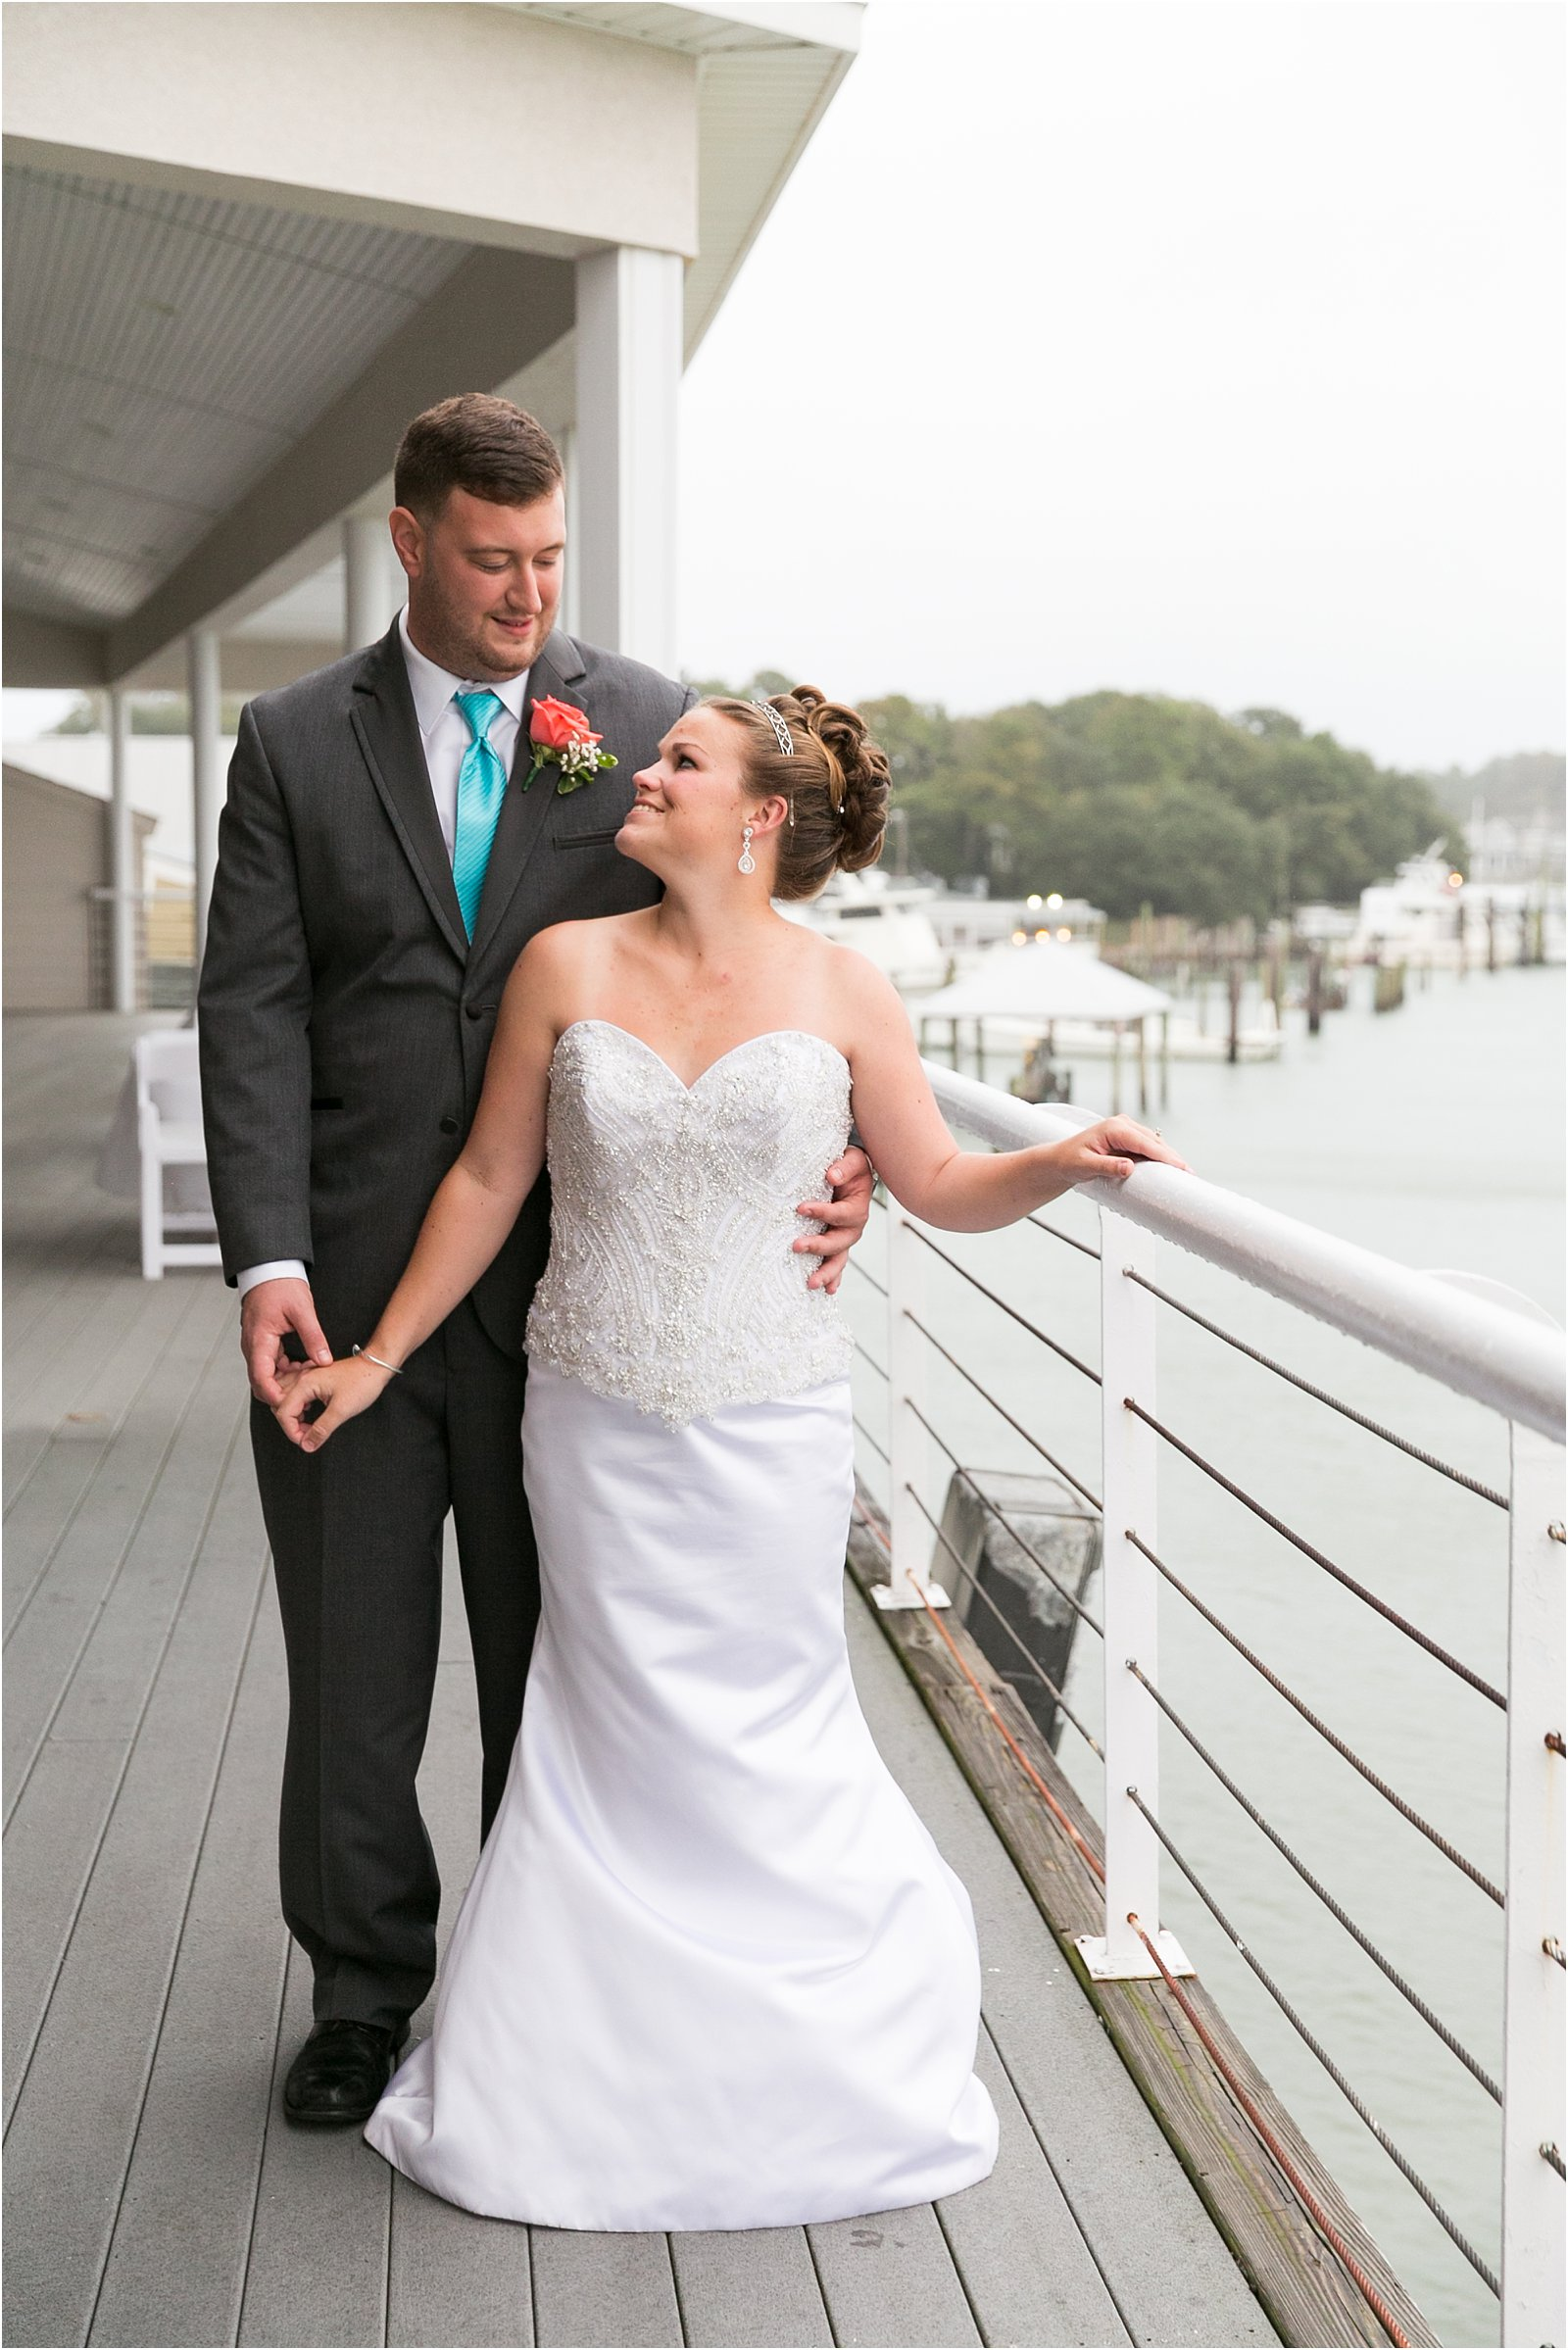 jessica_ryan_photography_lesner_inn_wedding_virginia_beach_rainy_day_0478